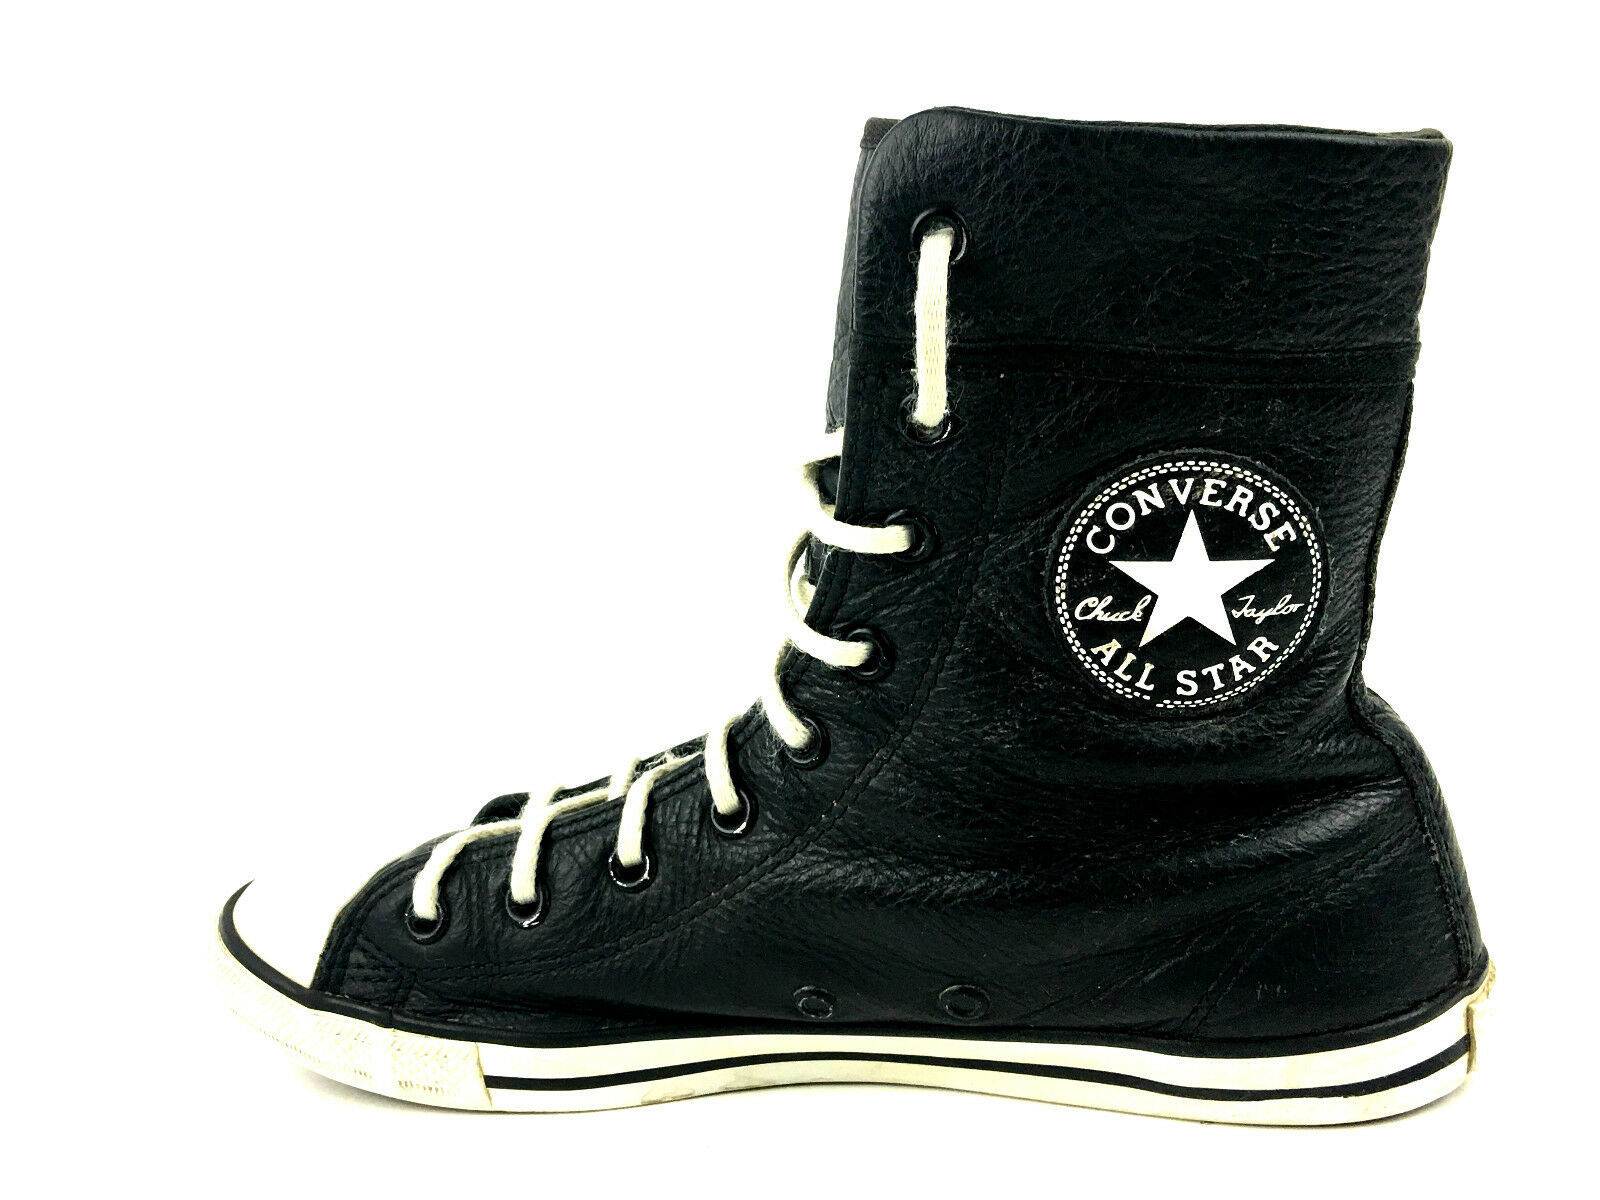 Converse All Star Black Extra High Hightops Size 7 USA